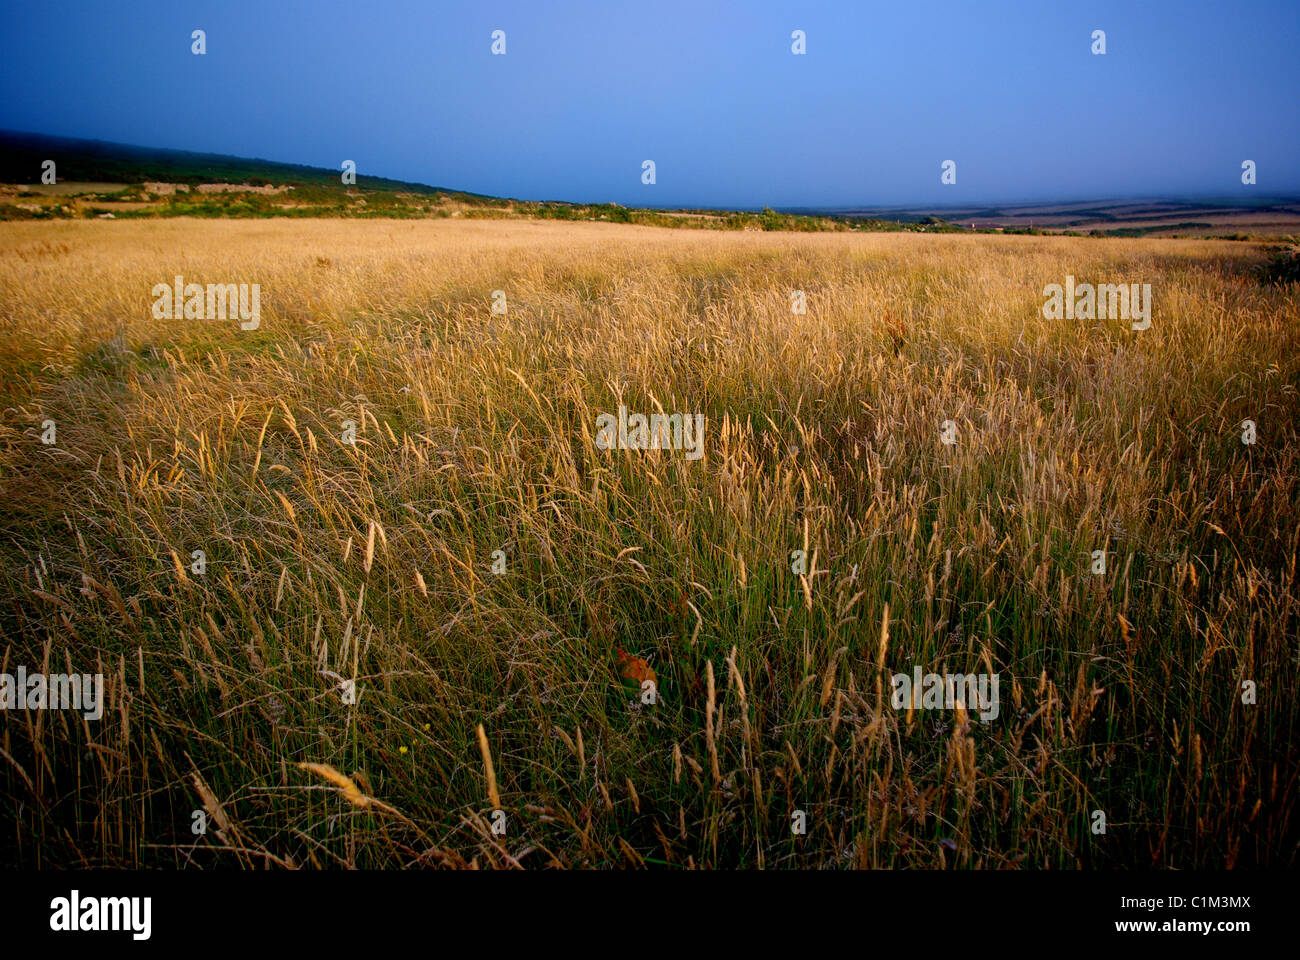 Hayfield in the evening sun. - Stock Image